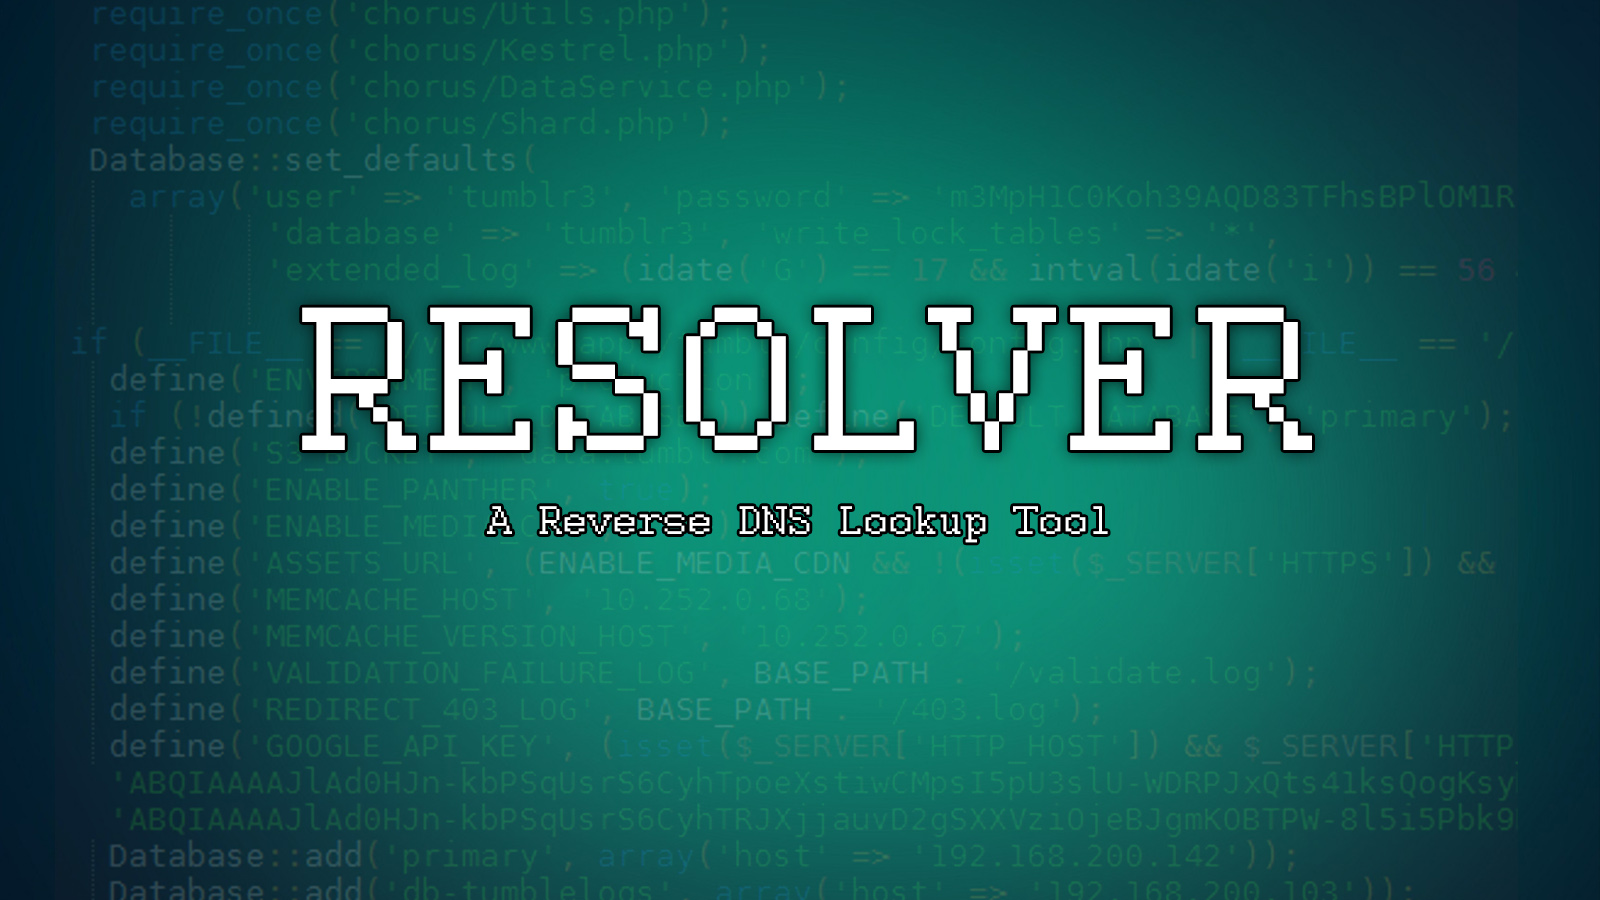 Resolver - A Reverse DNS Lookup Tool